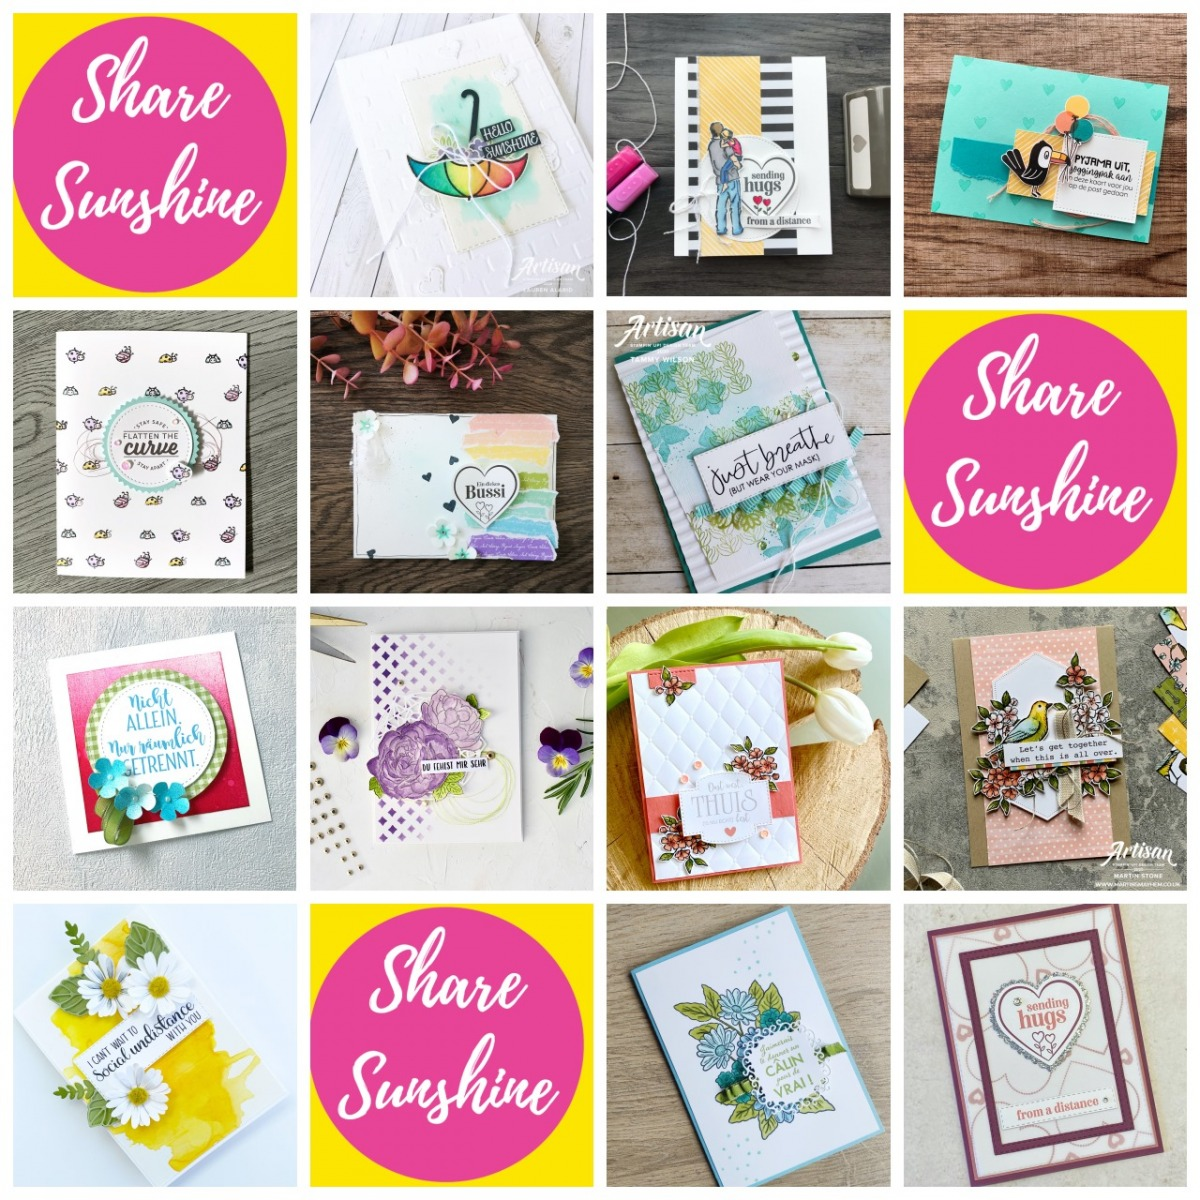 #sharesunshine COVID-19 Relief Fund Stampin' Up!